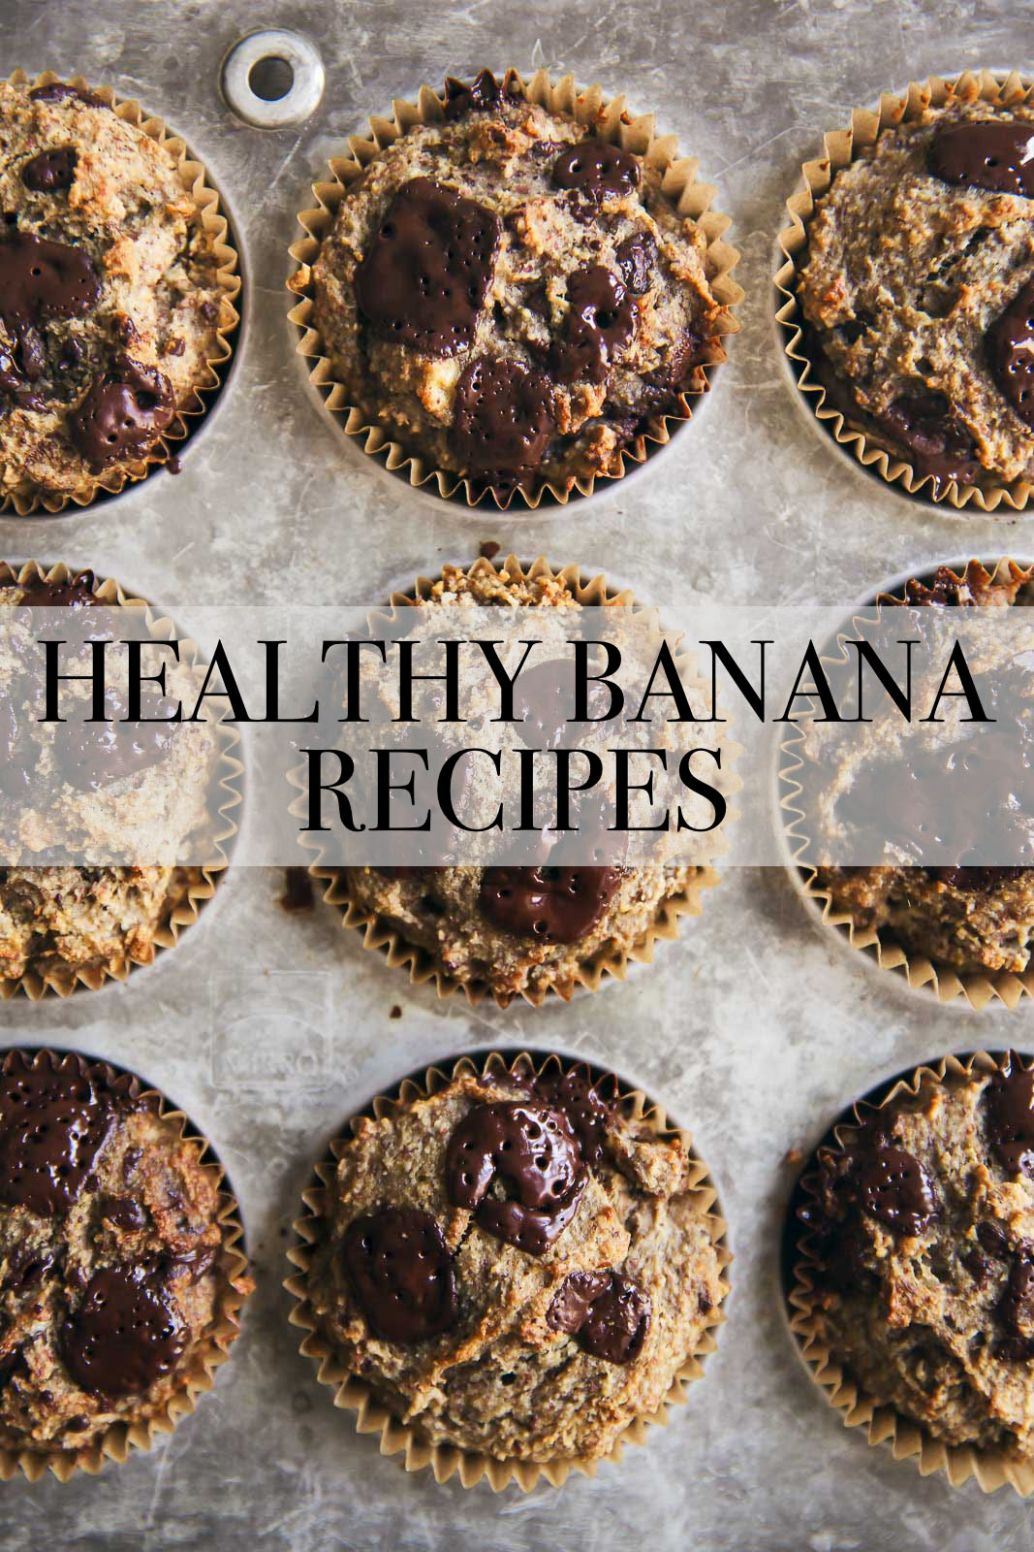 Got ripe bananas? Try out these Healthy Banana Recipes! - Healthy Recipes With Bananas